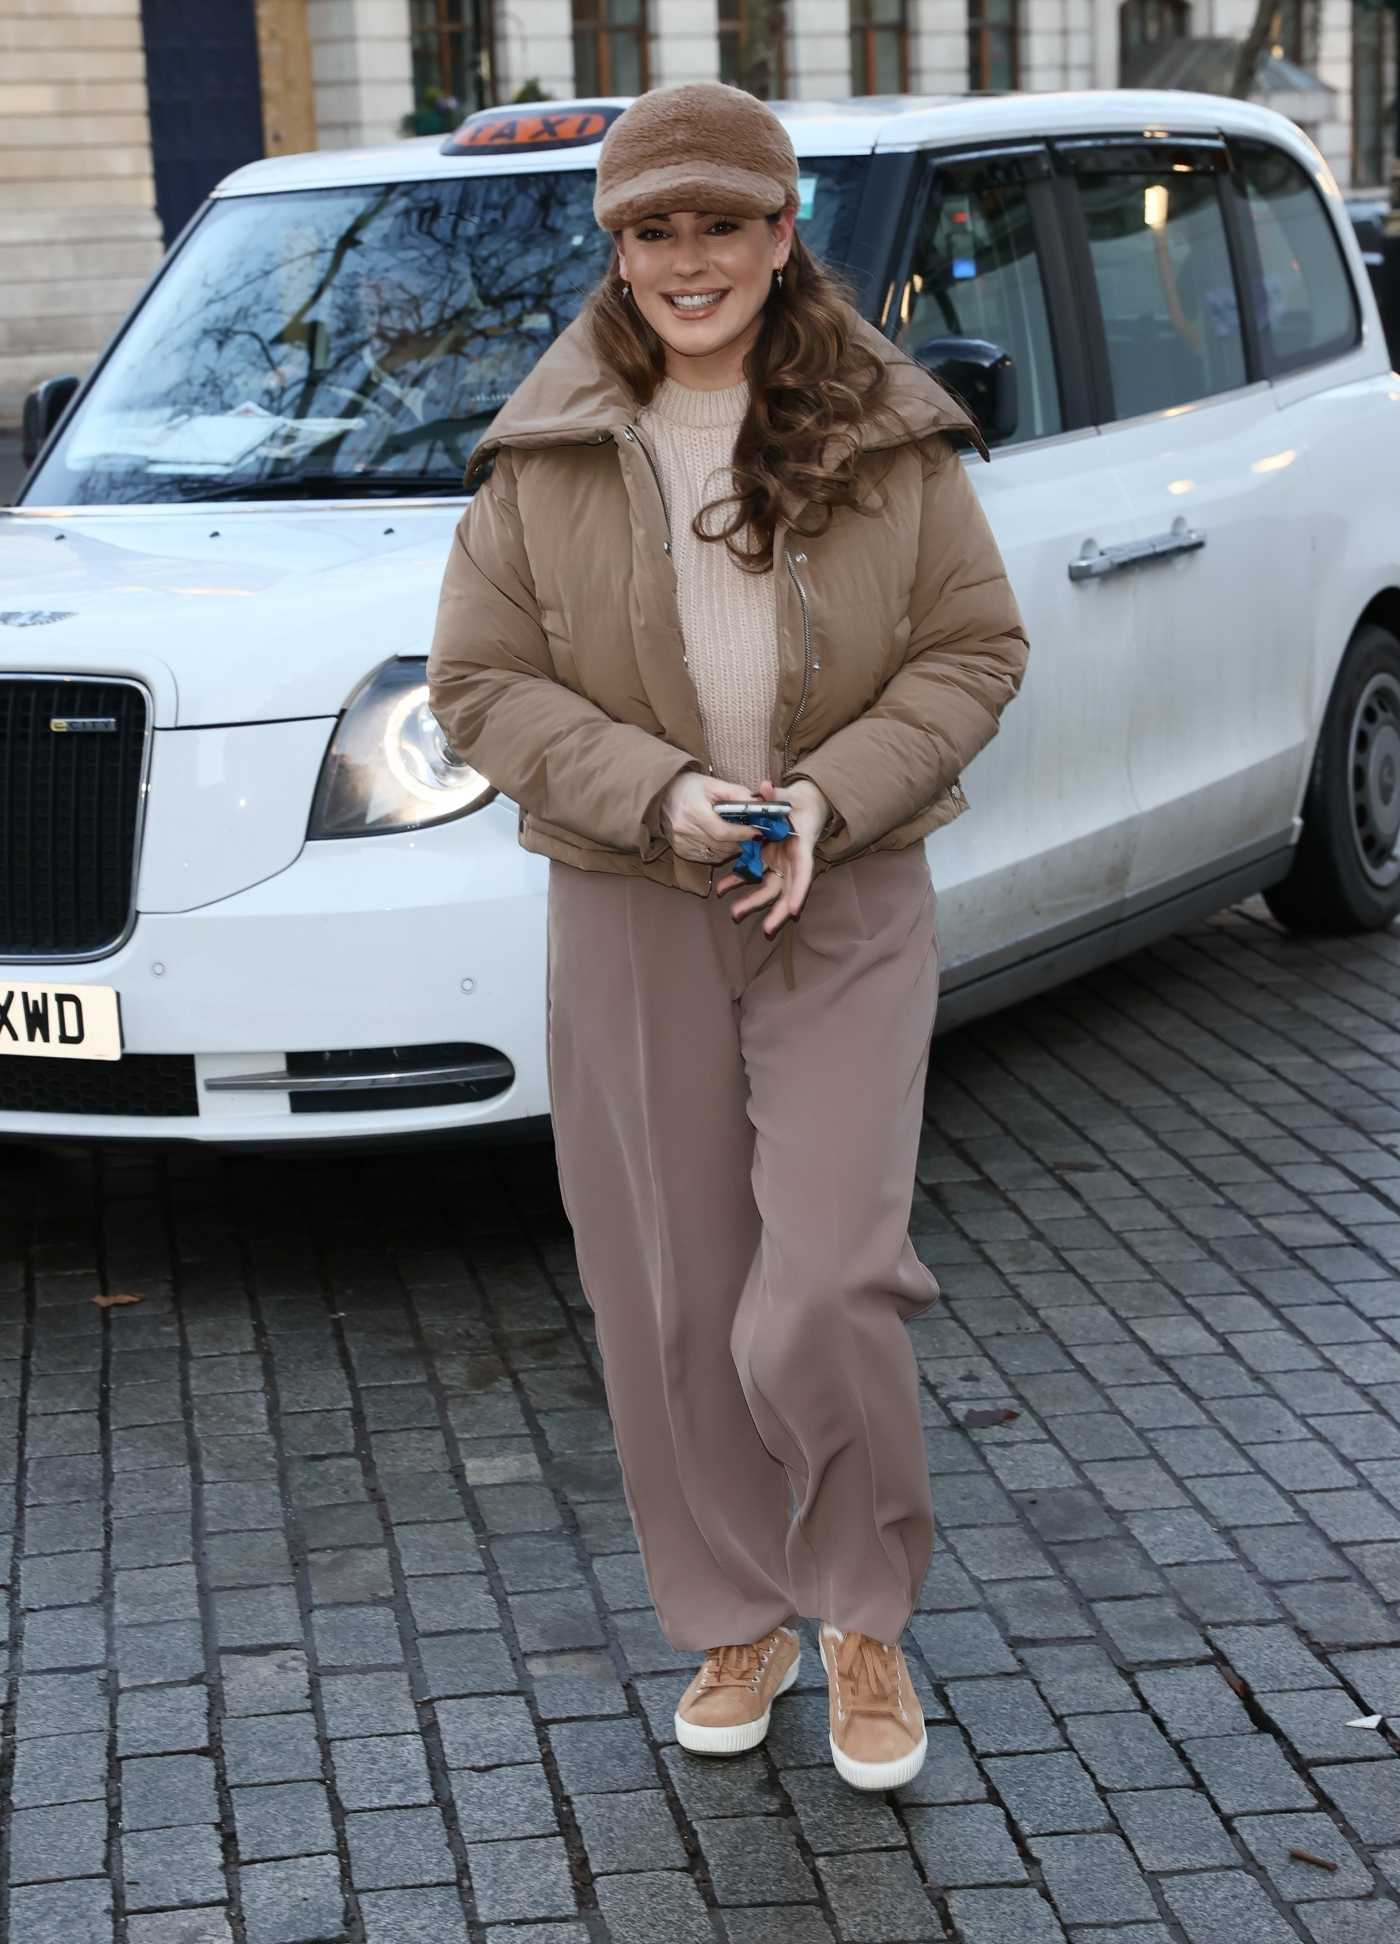 Kelly Brook in a Beige Puffer Jacket Arrives at the Heart Radio in London 01/25/2021